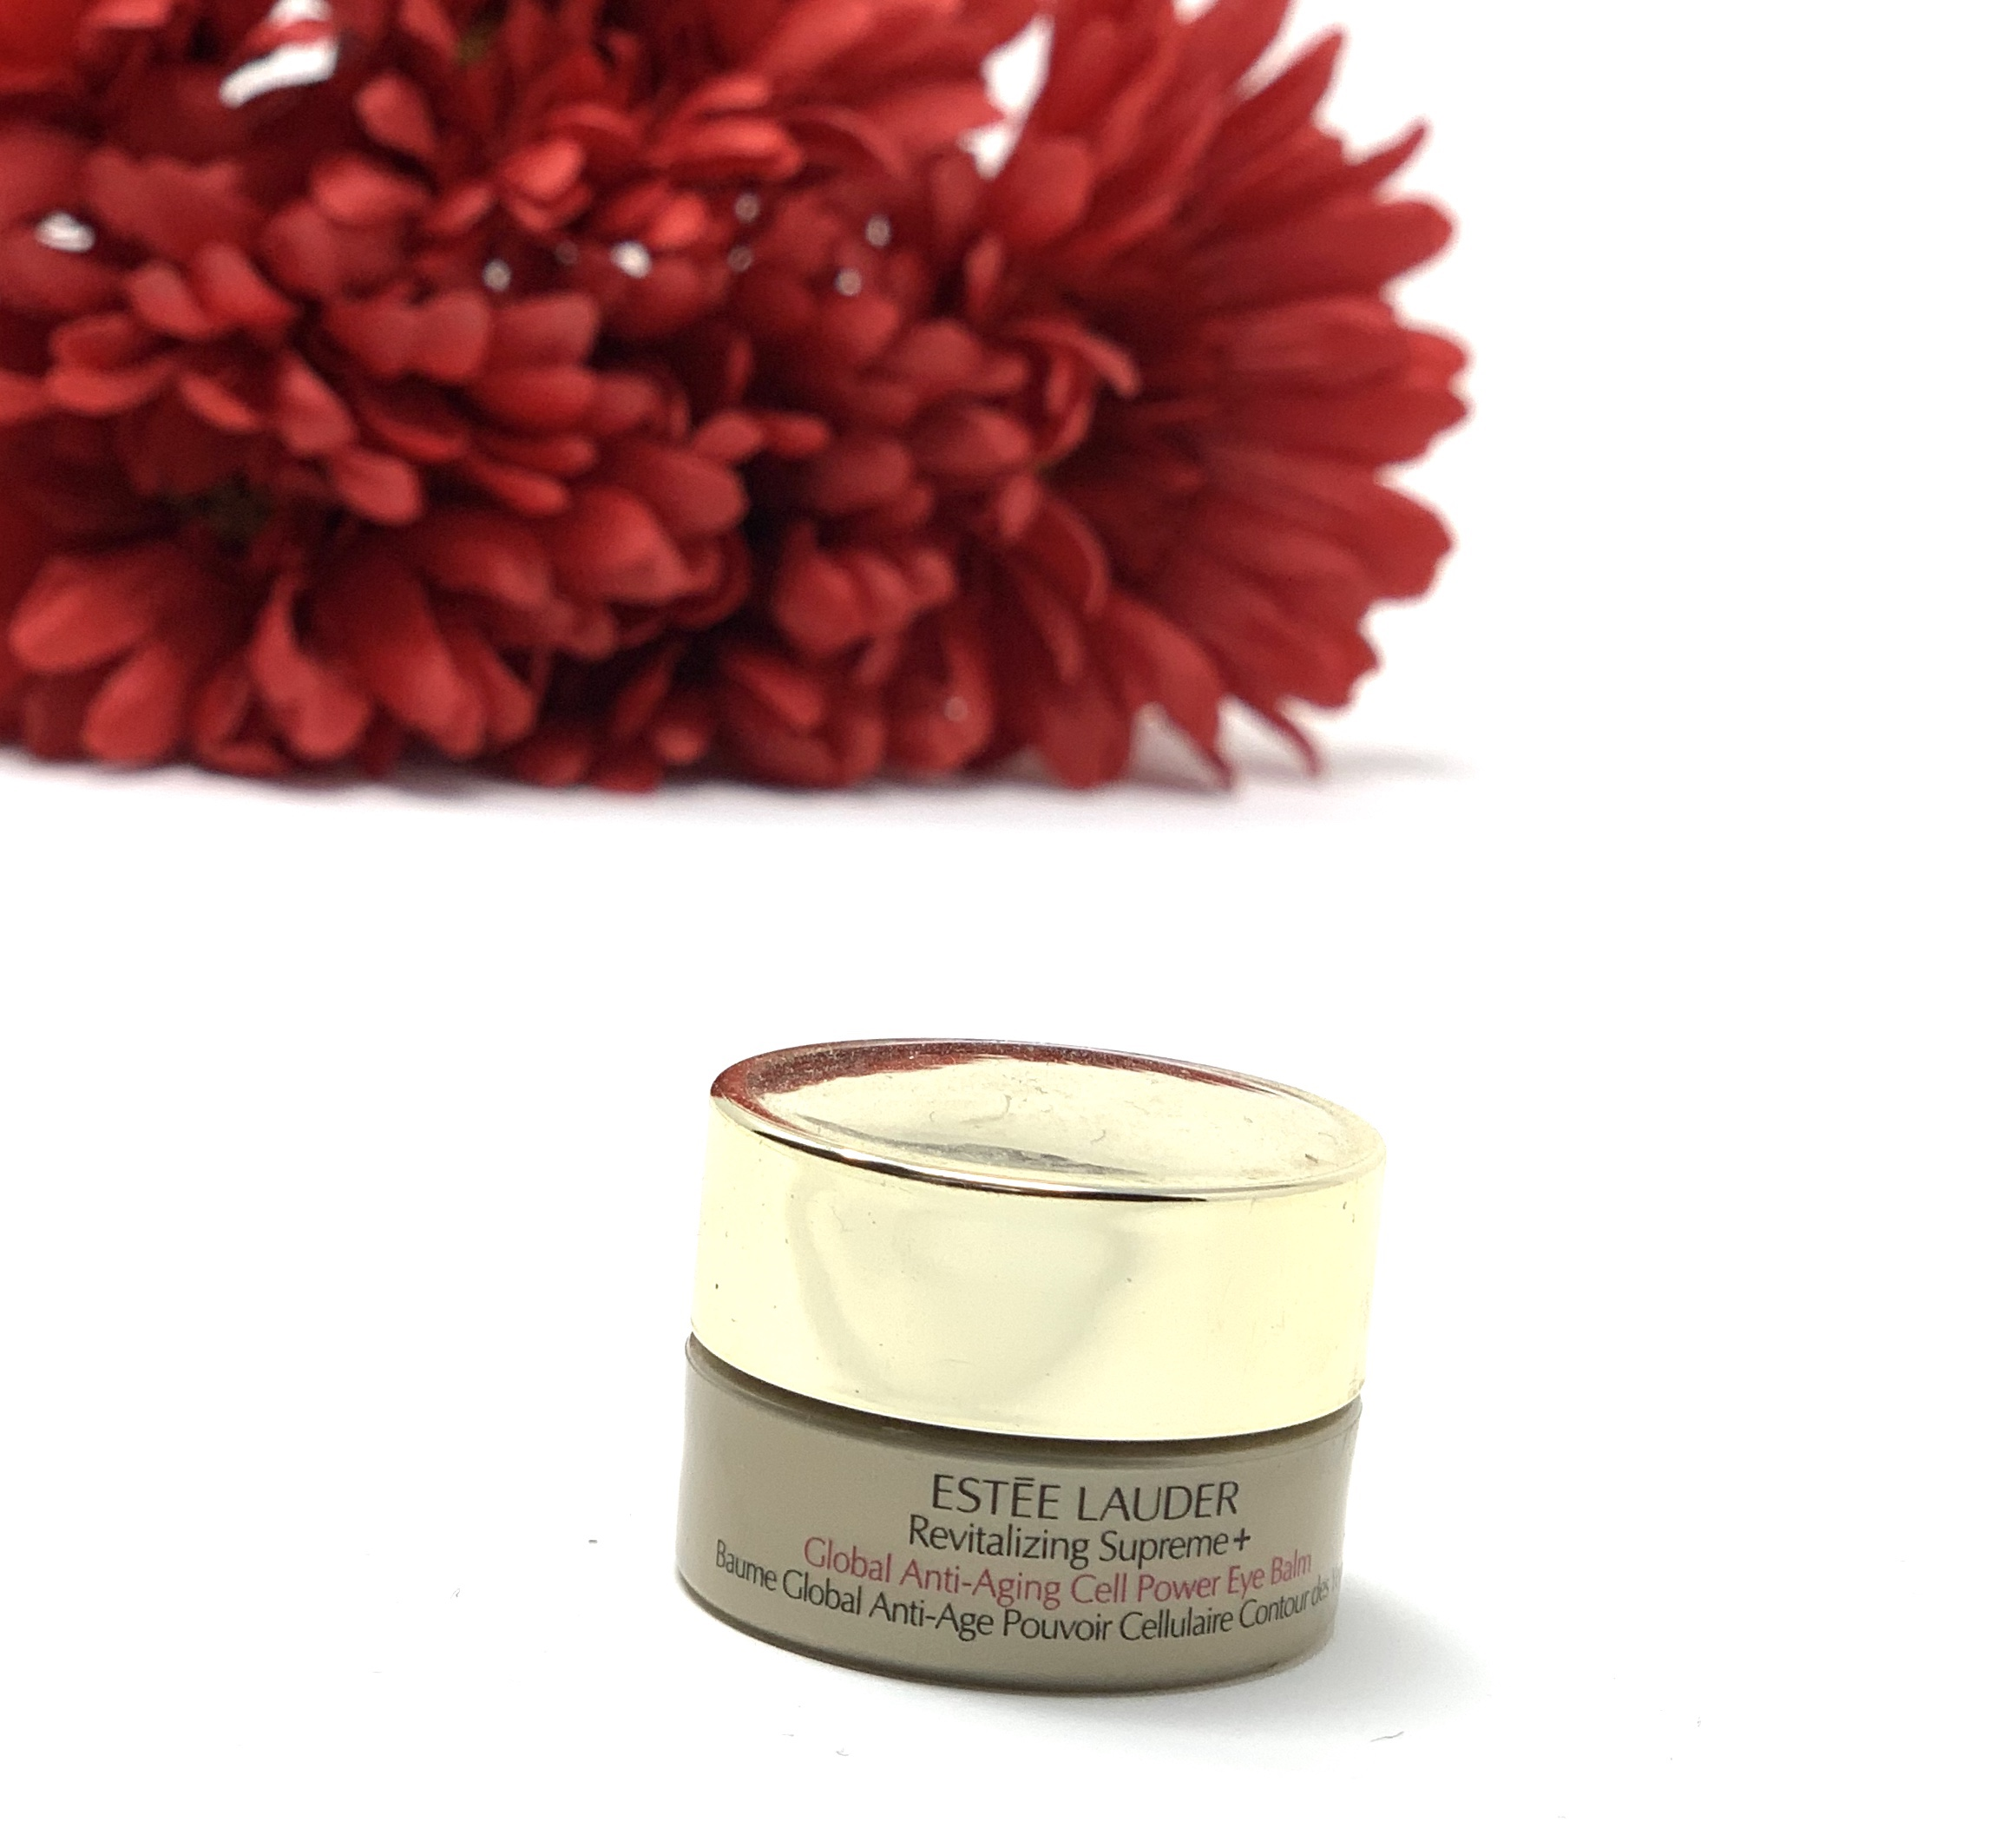 Estee Lauder eye cream